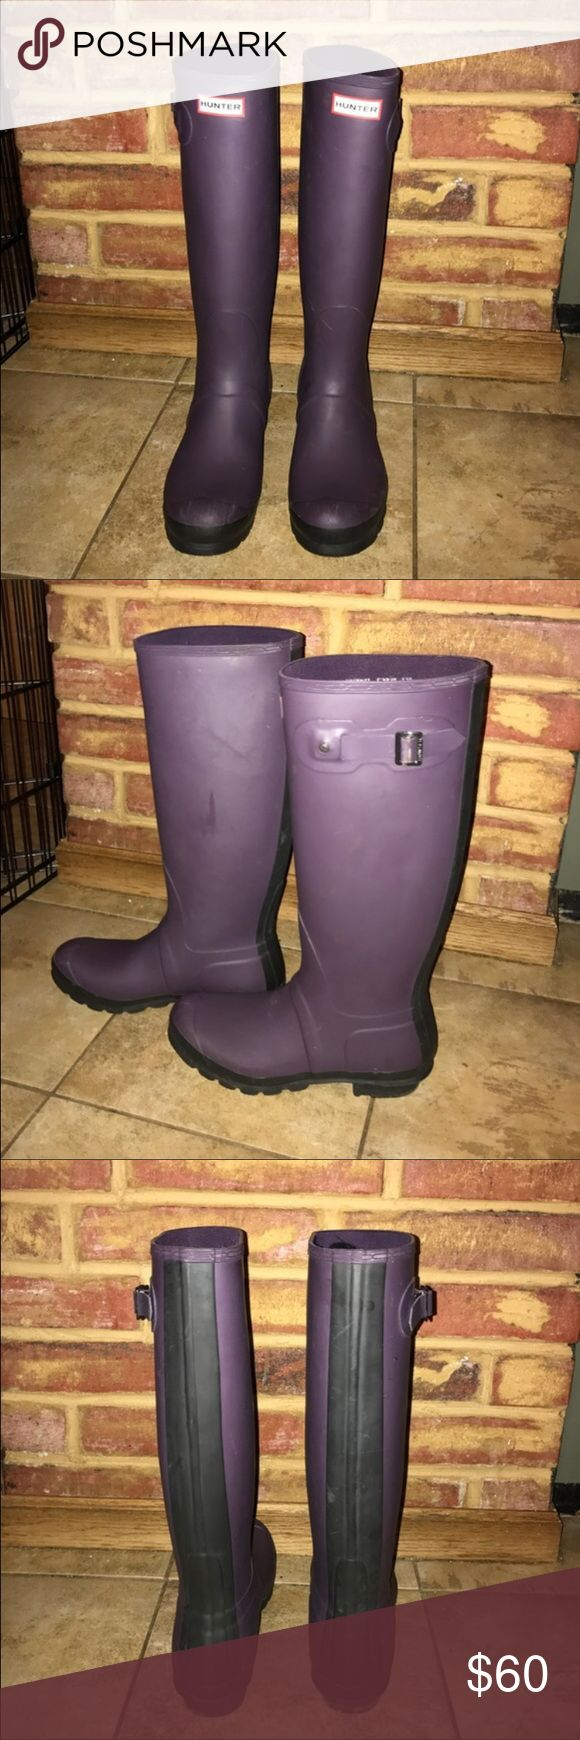 WOMENS HUNTER BOOTS Women's hunter rain boot, size 8 US, matte purple with a matte black stripe down the middle. (Love them, but they are a little bit too big) Hunter Boots Shoes Winter & Rain Boots